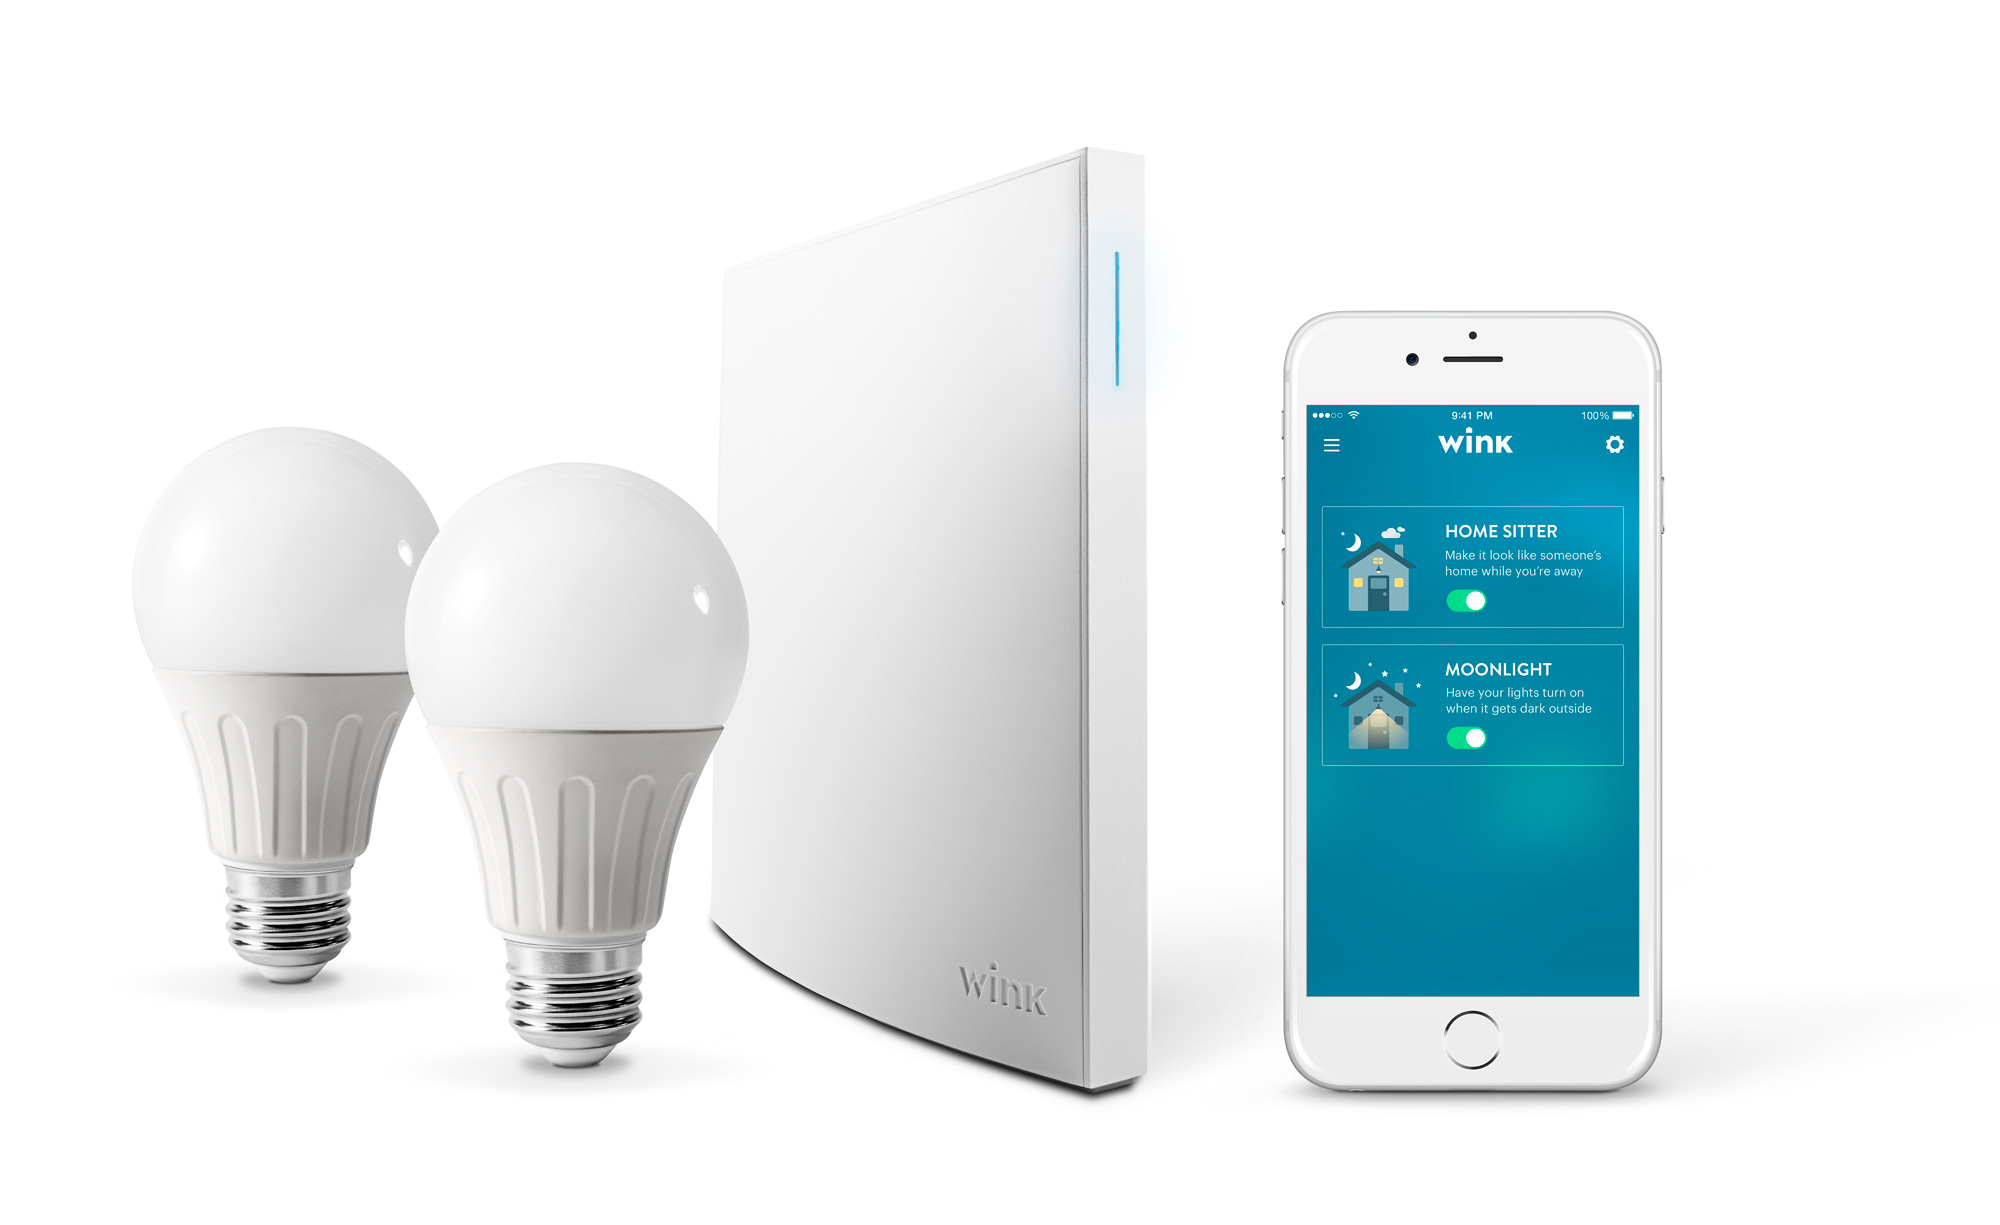 Wink Buy And View Smart Home Products 2 Way Bulb Switch 3 Results